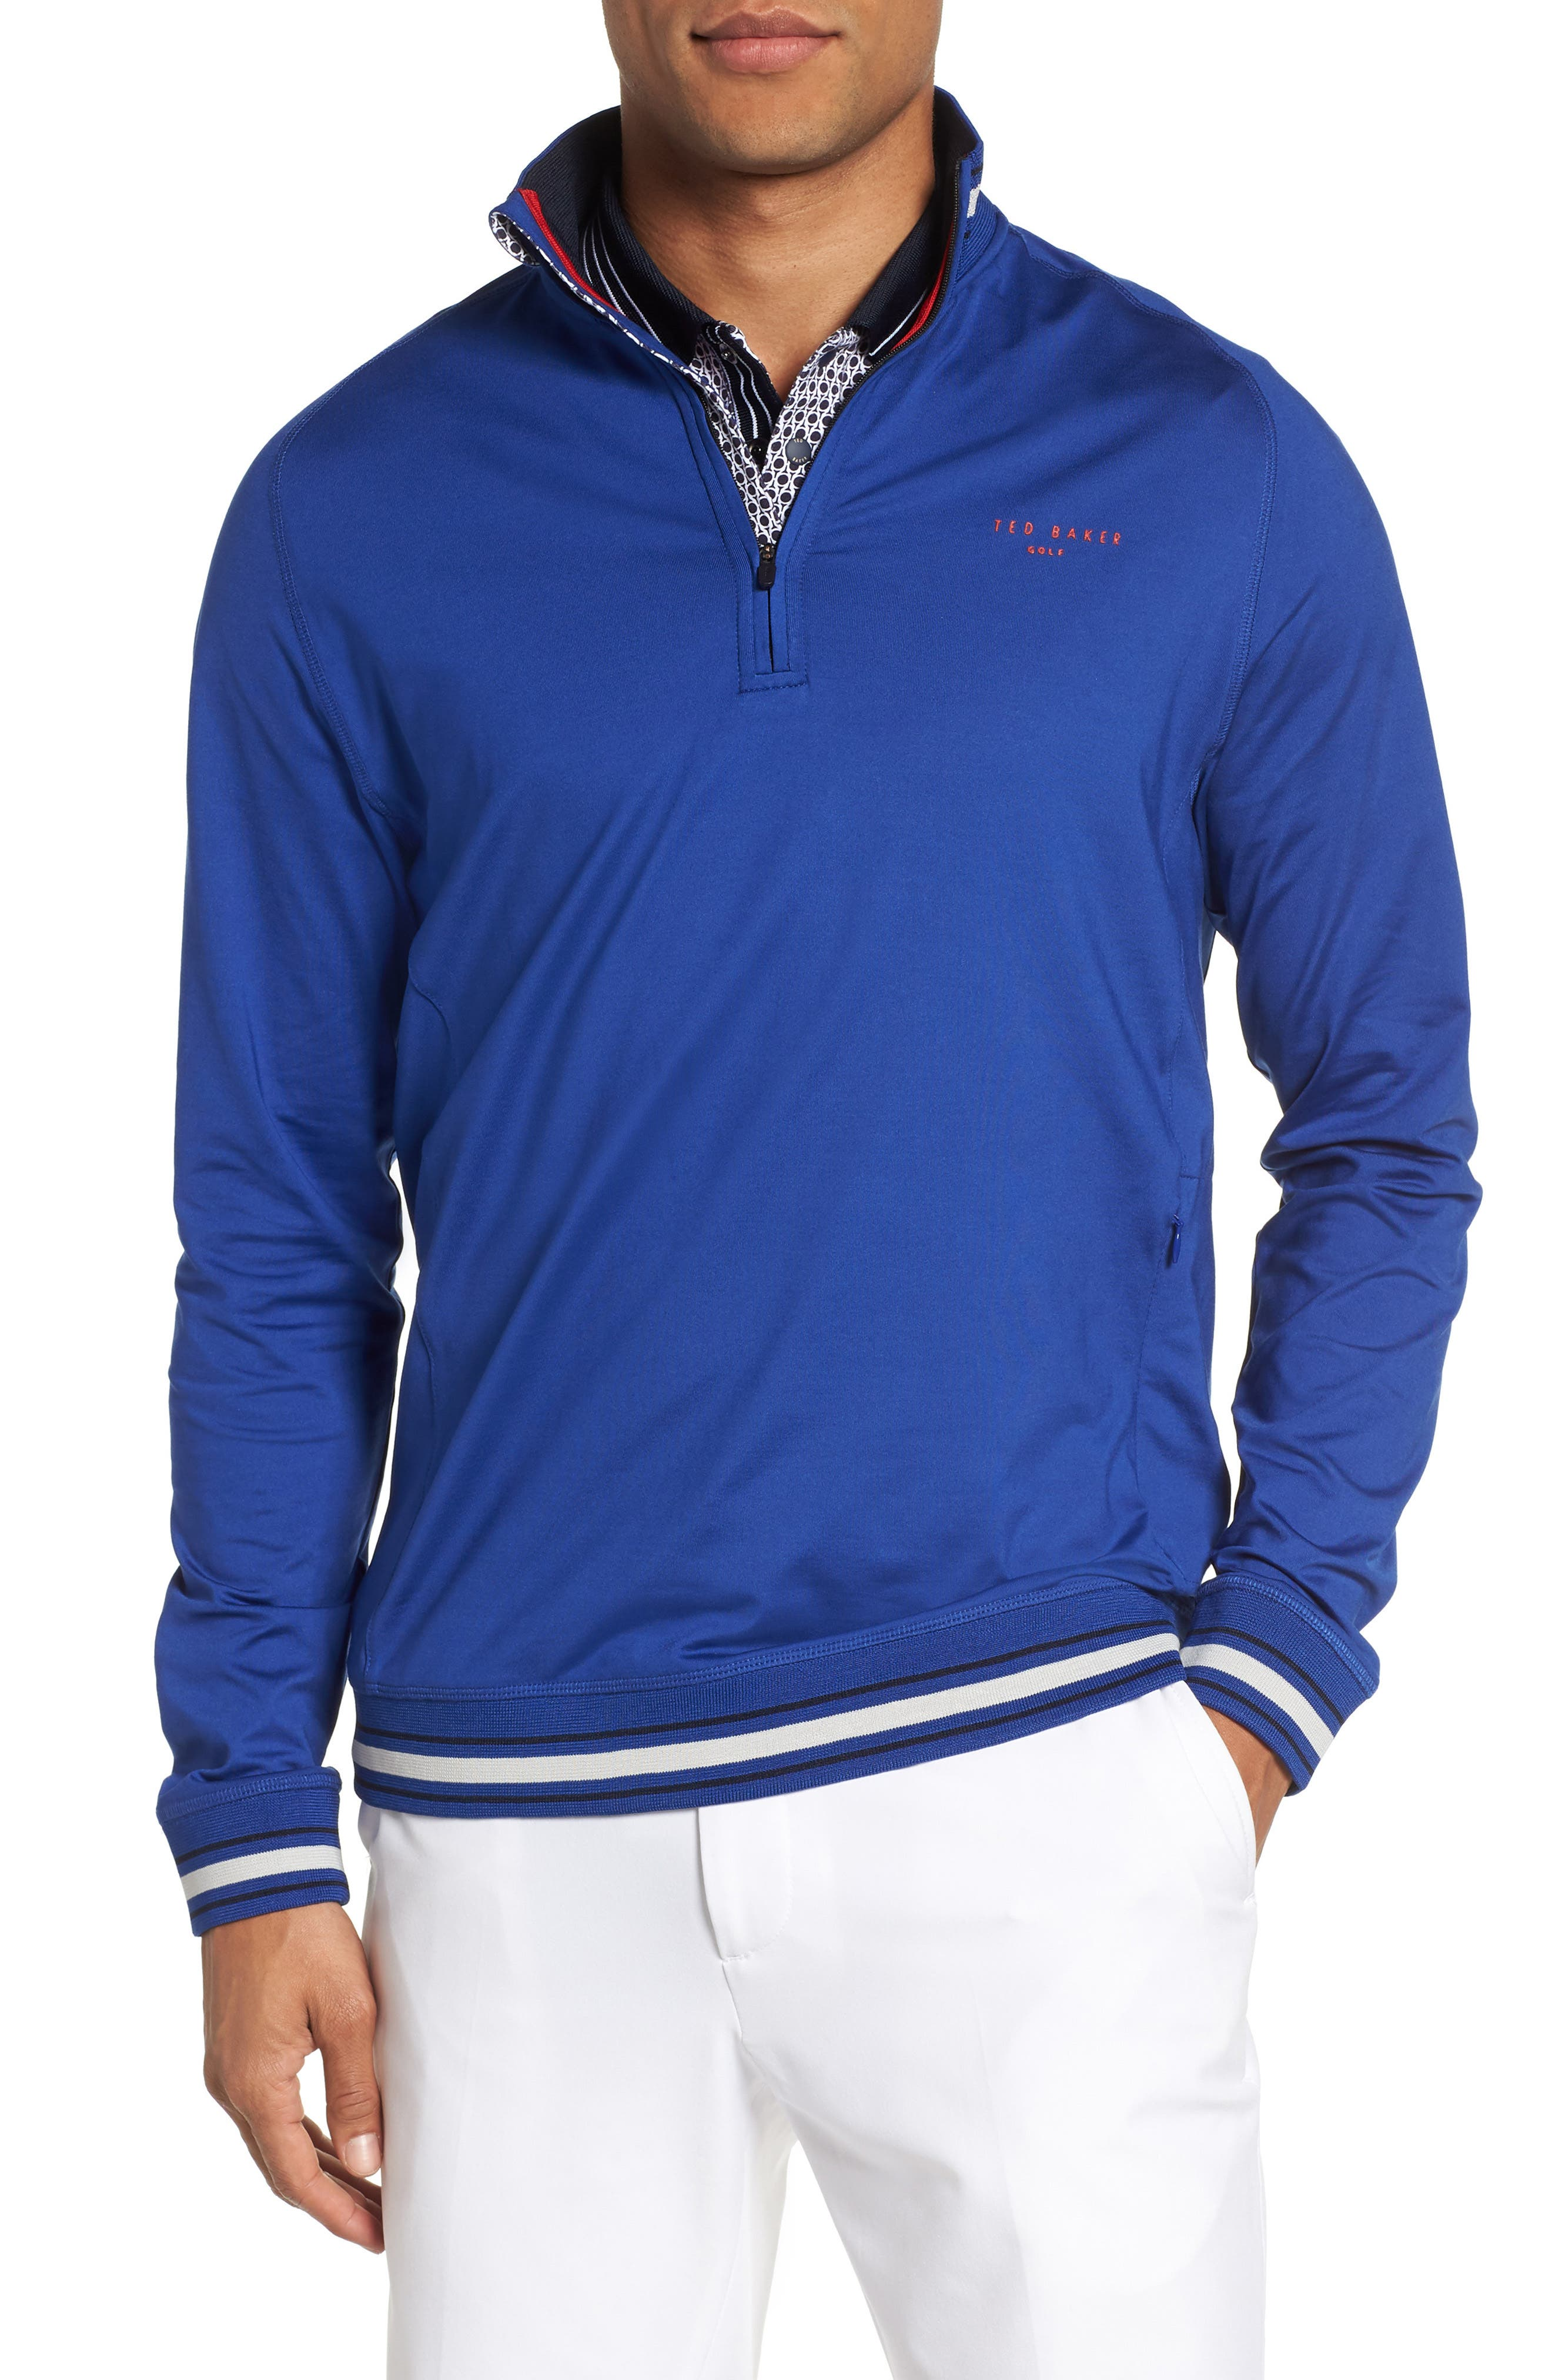 Trim Fit Quarter Zip Golf Pullover,                         Main,                         color, Bright Blue